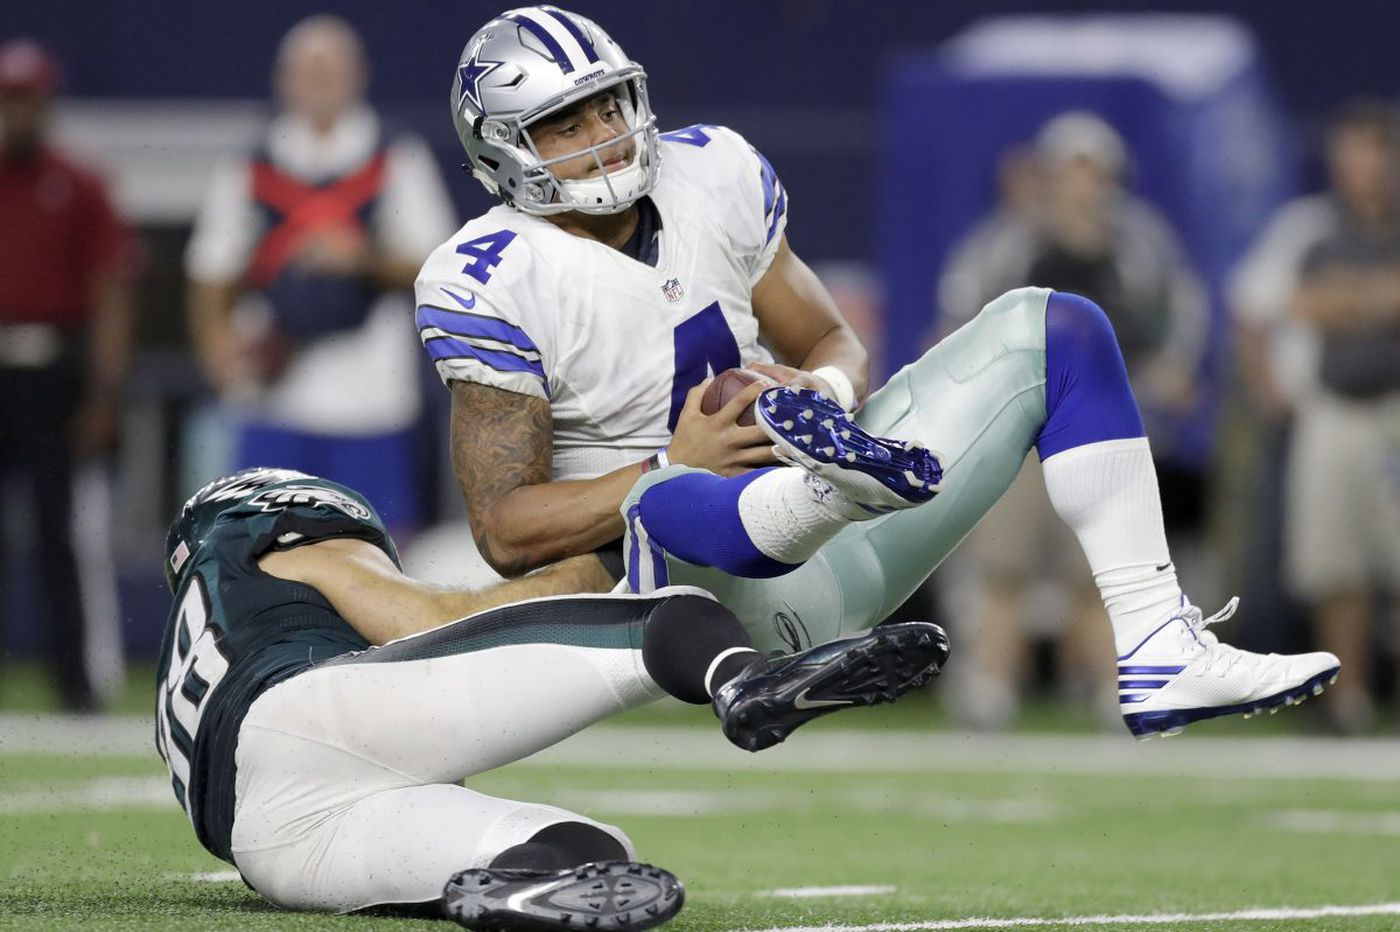 Eagles-Cowboys predictions for Sunday night's game